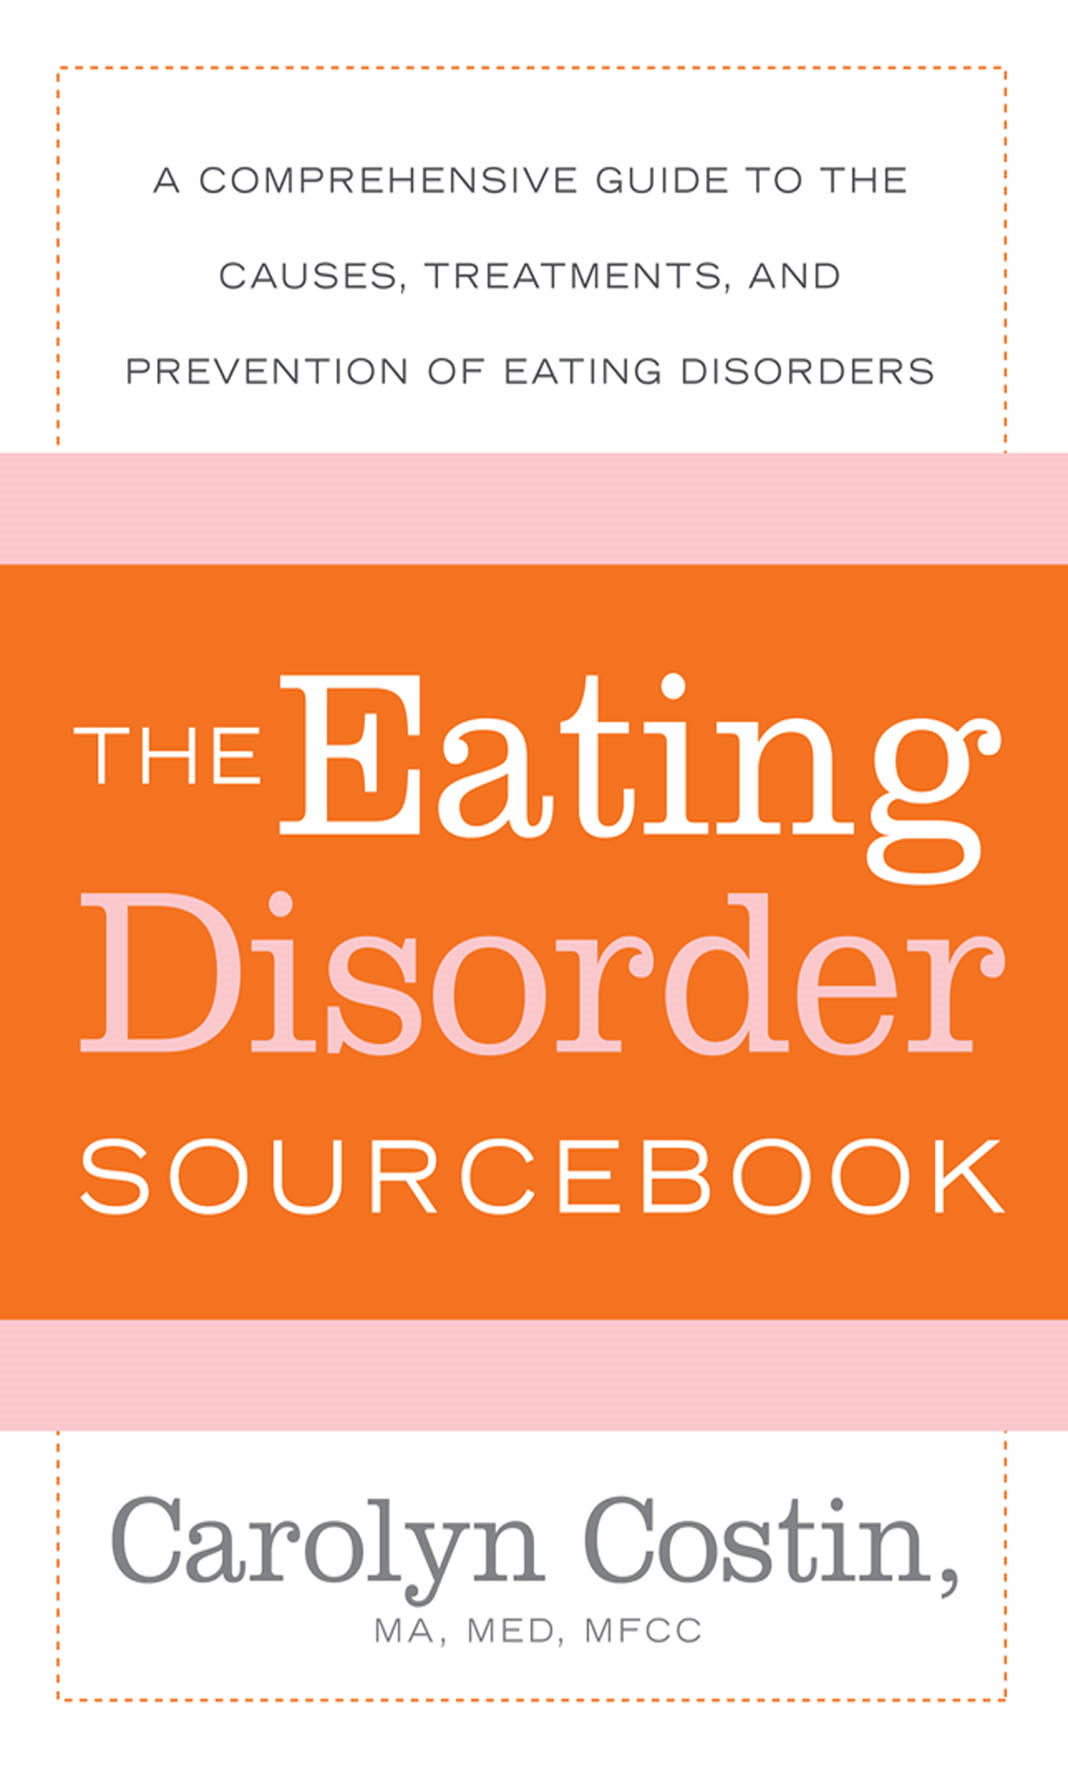 The Eating Disorders Sourcebook : A Comprehensive Guide to the Causes, Treatments, and Prevention of Eating Disorders